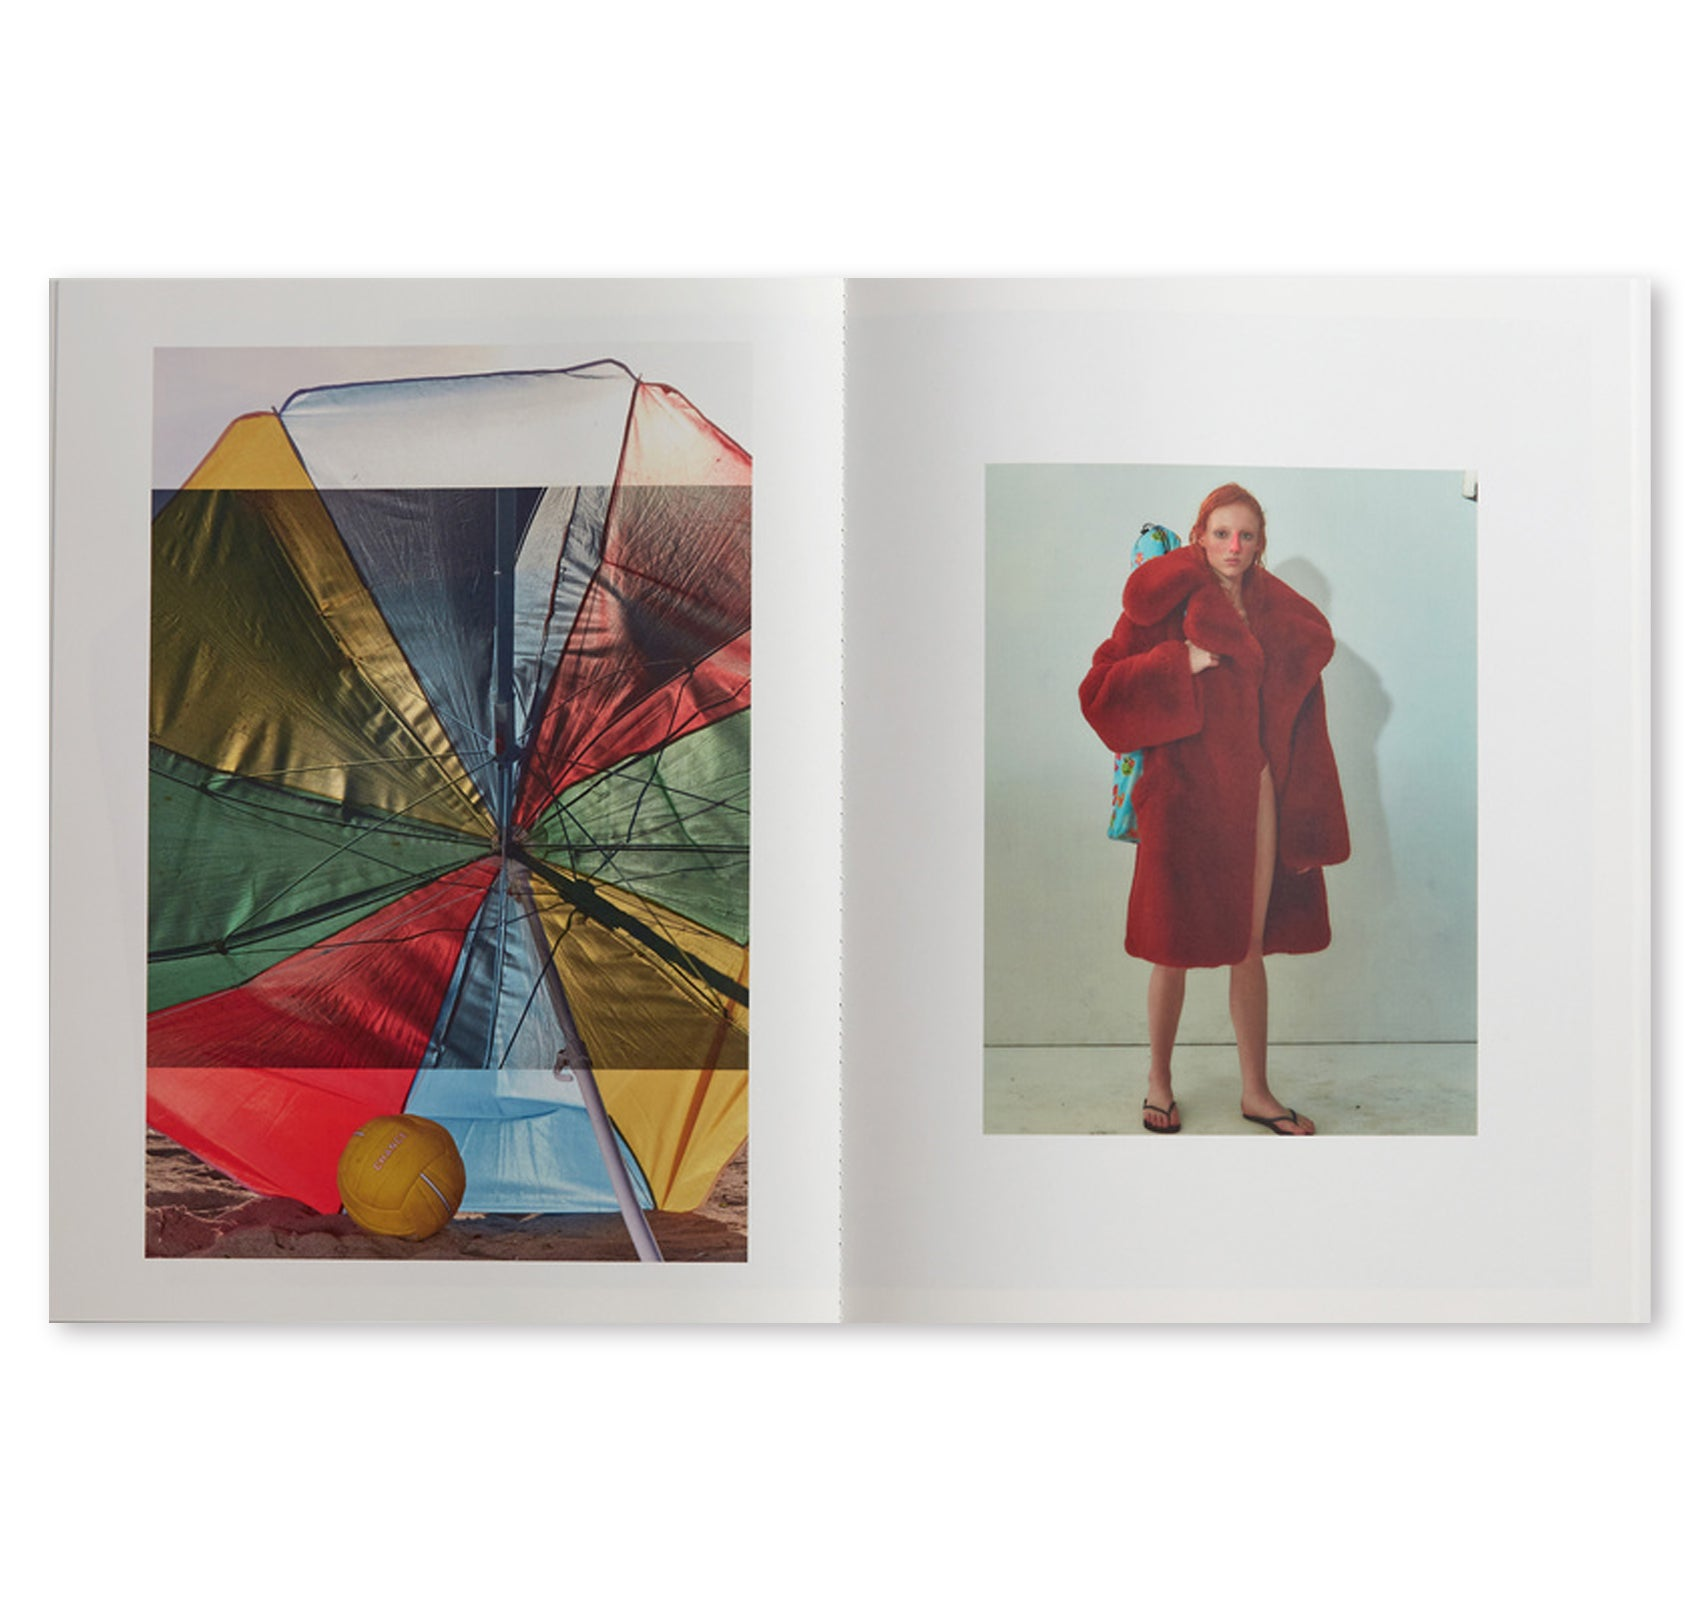 BEACH UMBRELLA by Roe Ethridge [SIGNED]